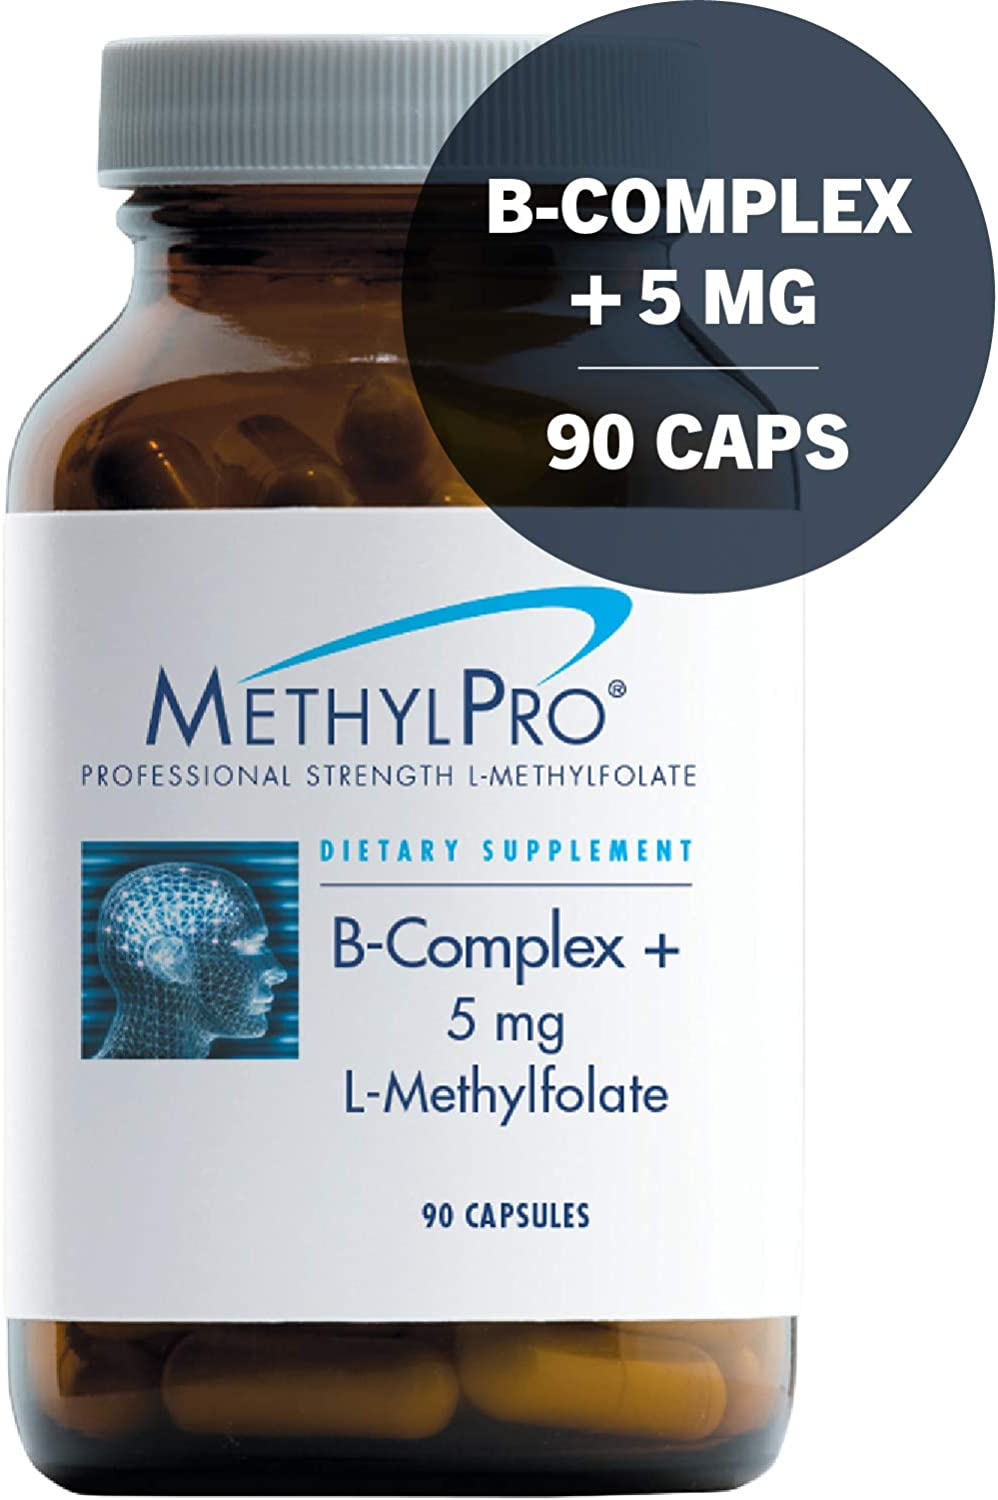 MethylPro B-Complex 5mg L-Methylfolate 90 Capsules – Professional Strength Active Folate for Energy Mood Support with Methyl B12 B6 as P-5-P, Non-GMO Gluten-Free